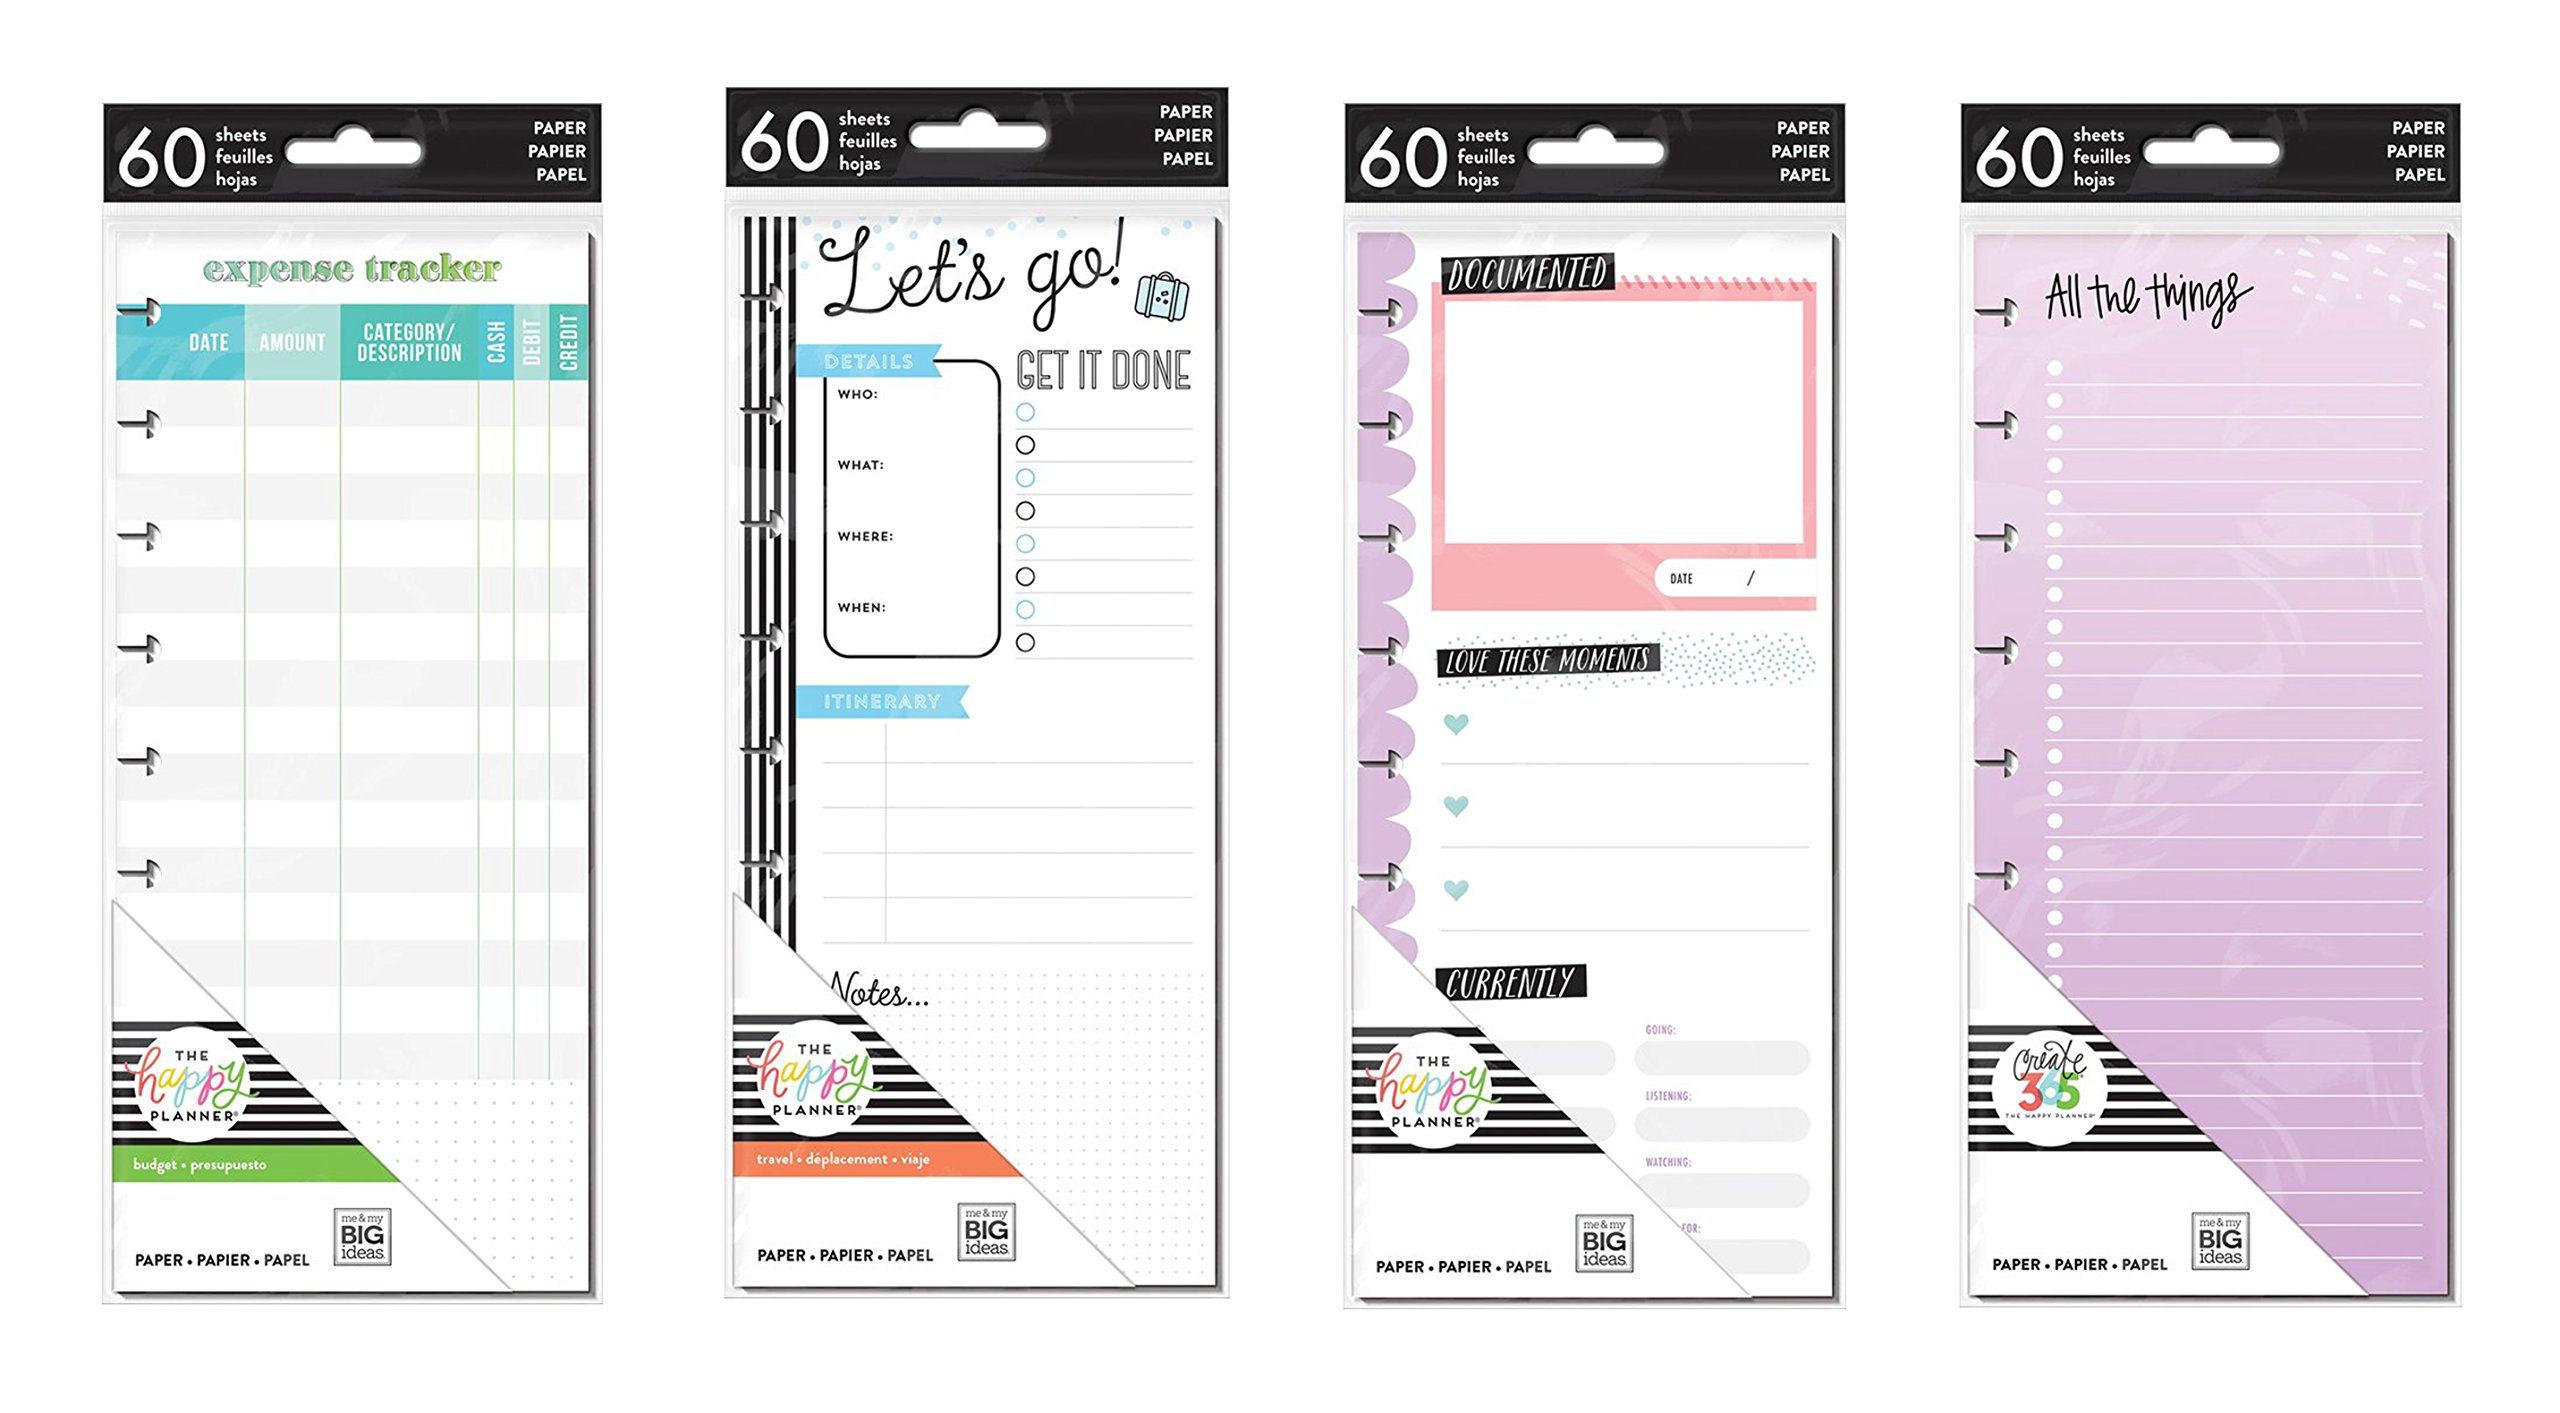 Happy Planner Classic Planner Half Sheets - Expense Tracker, Currently, Travel and Colored Paper - 4 Item MAMBI Bundle